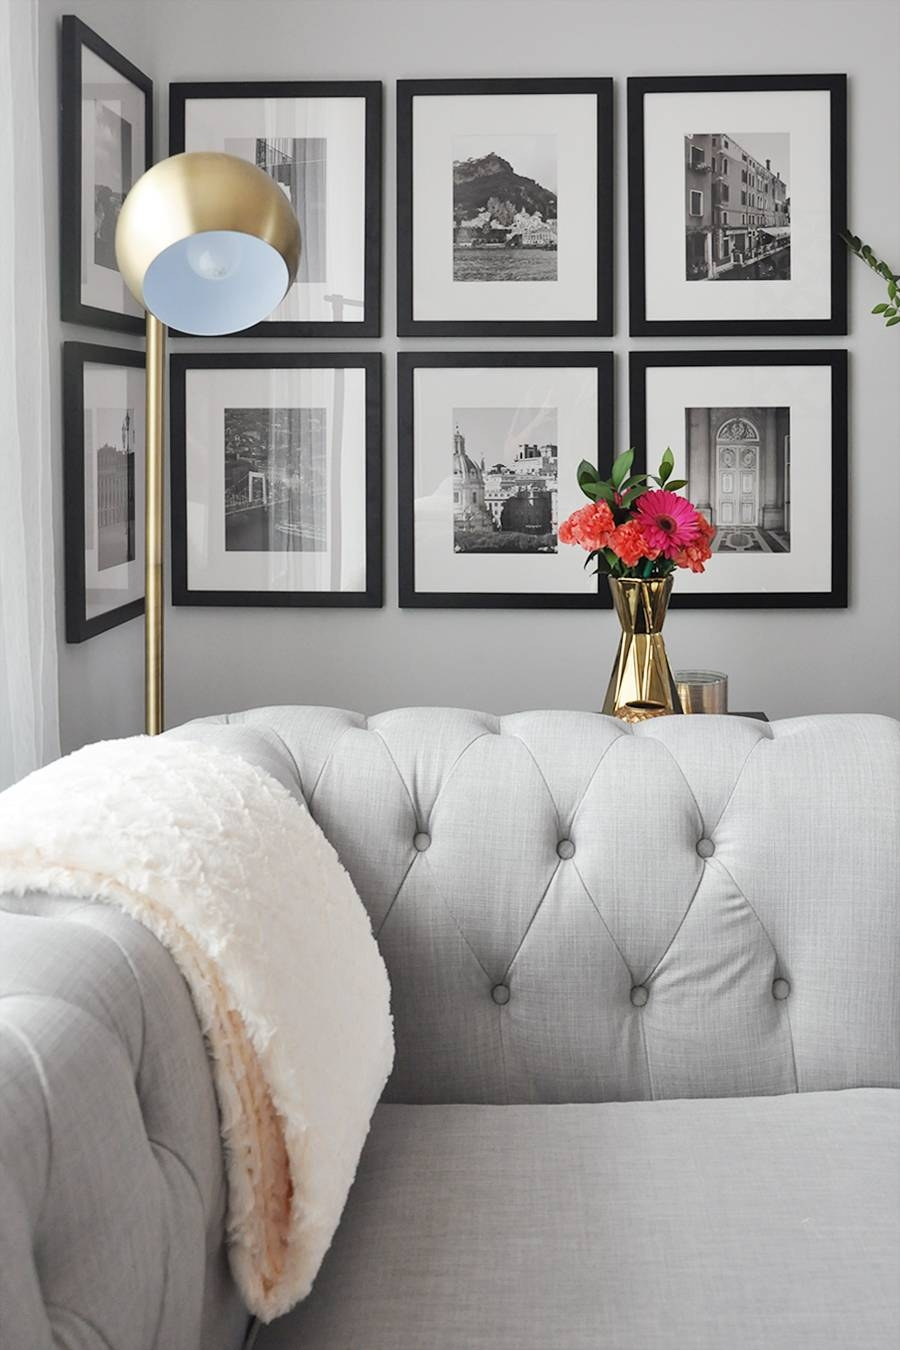 Living Room : Wall Art Ceiling Lights Wall Frames For Living Room Pertaining To Latest Wall Art Frames (View 20 of 20)